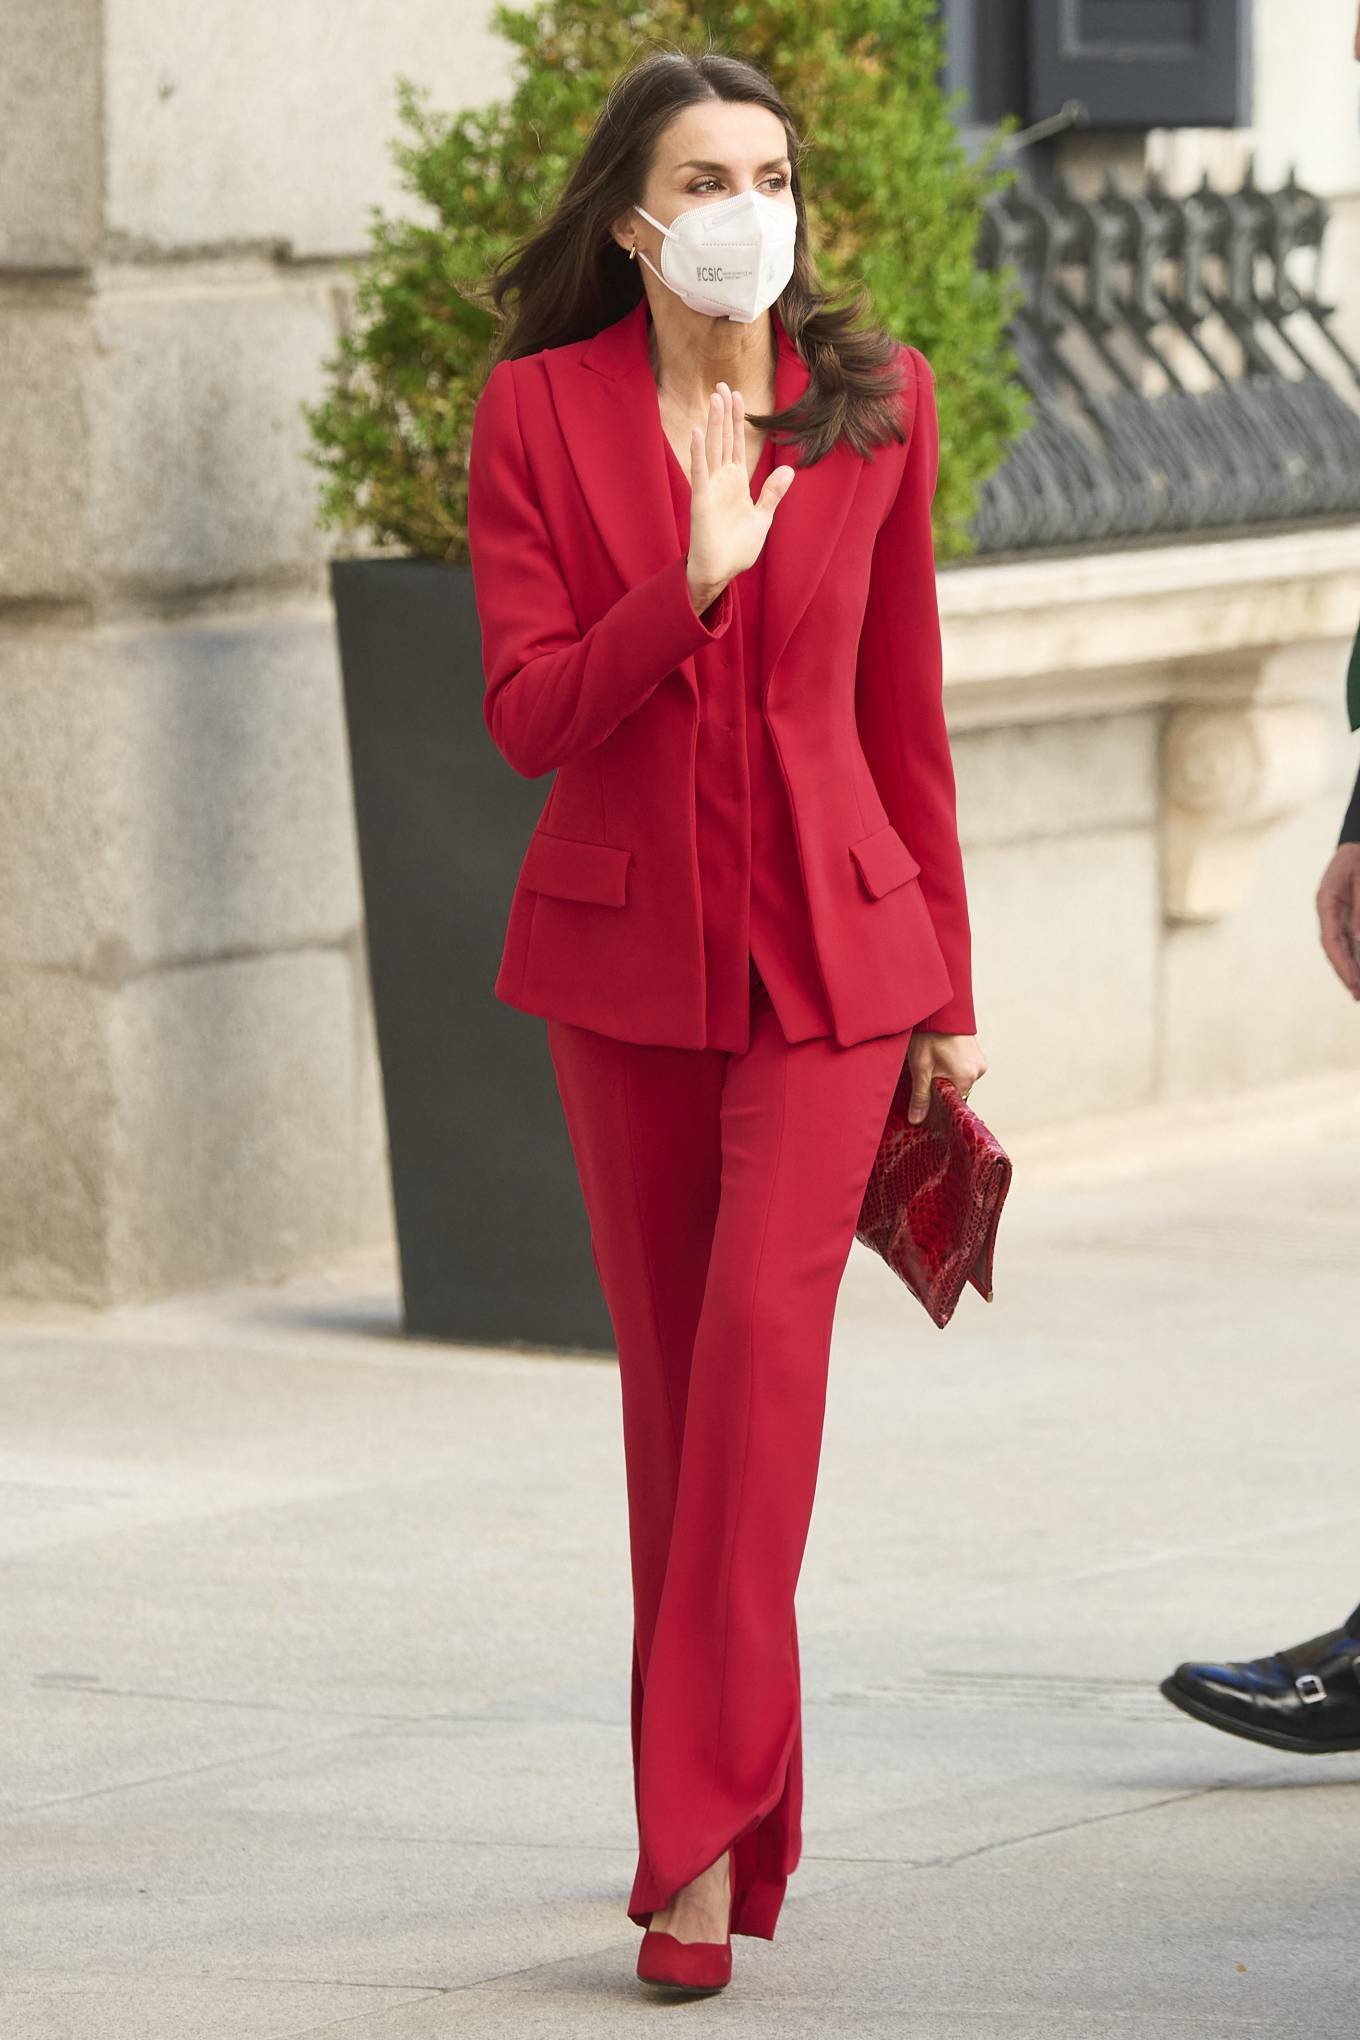 Queen Letizia Of Spain 2021 : Queen Letizia of Spain – In all red attends the tribute to the figure of Clara Campoamor in Madrid-18